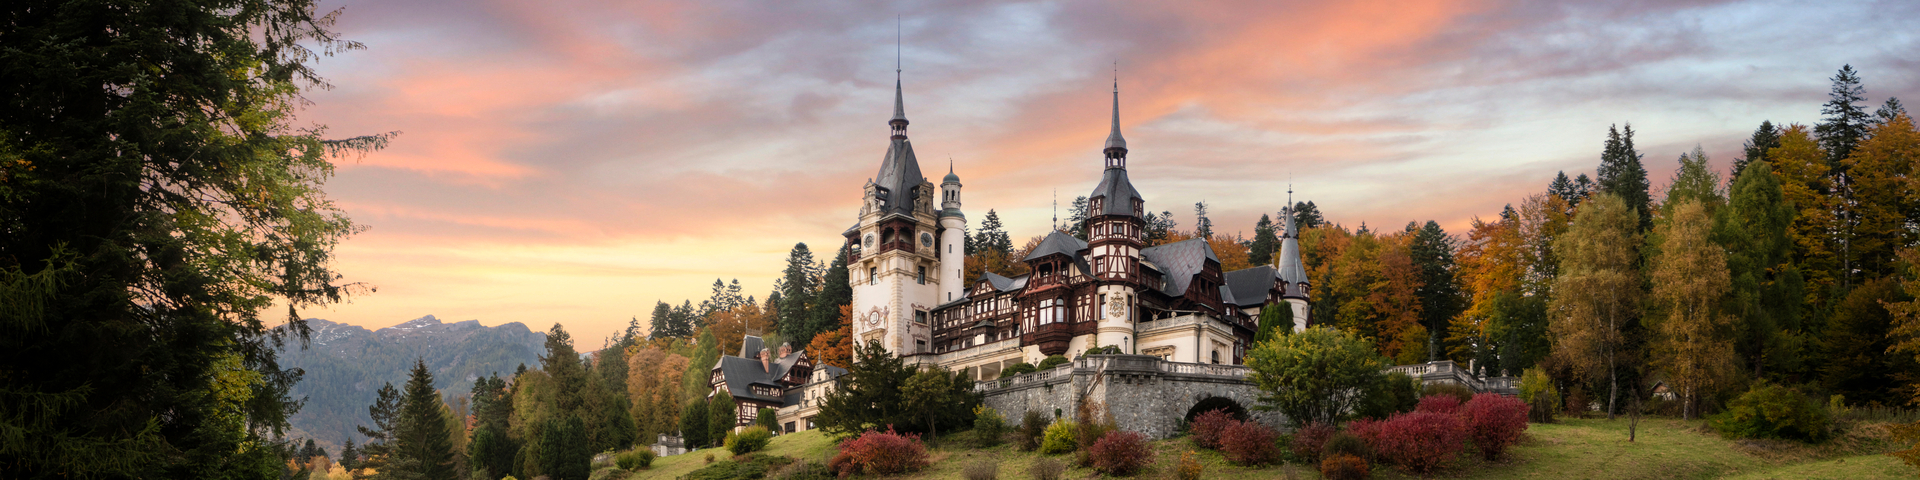 Cruise & Rail: The Enchanting Danube & the Castles of Transylvania